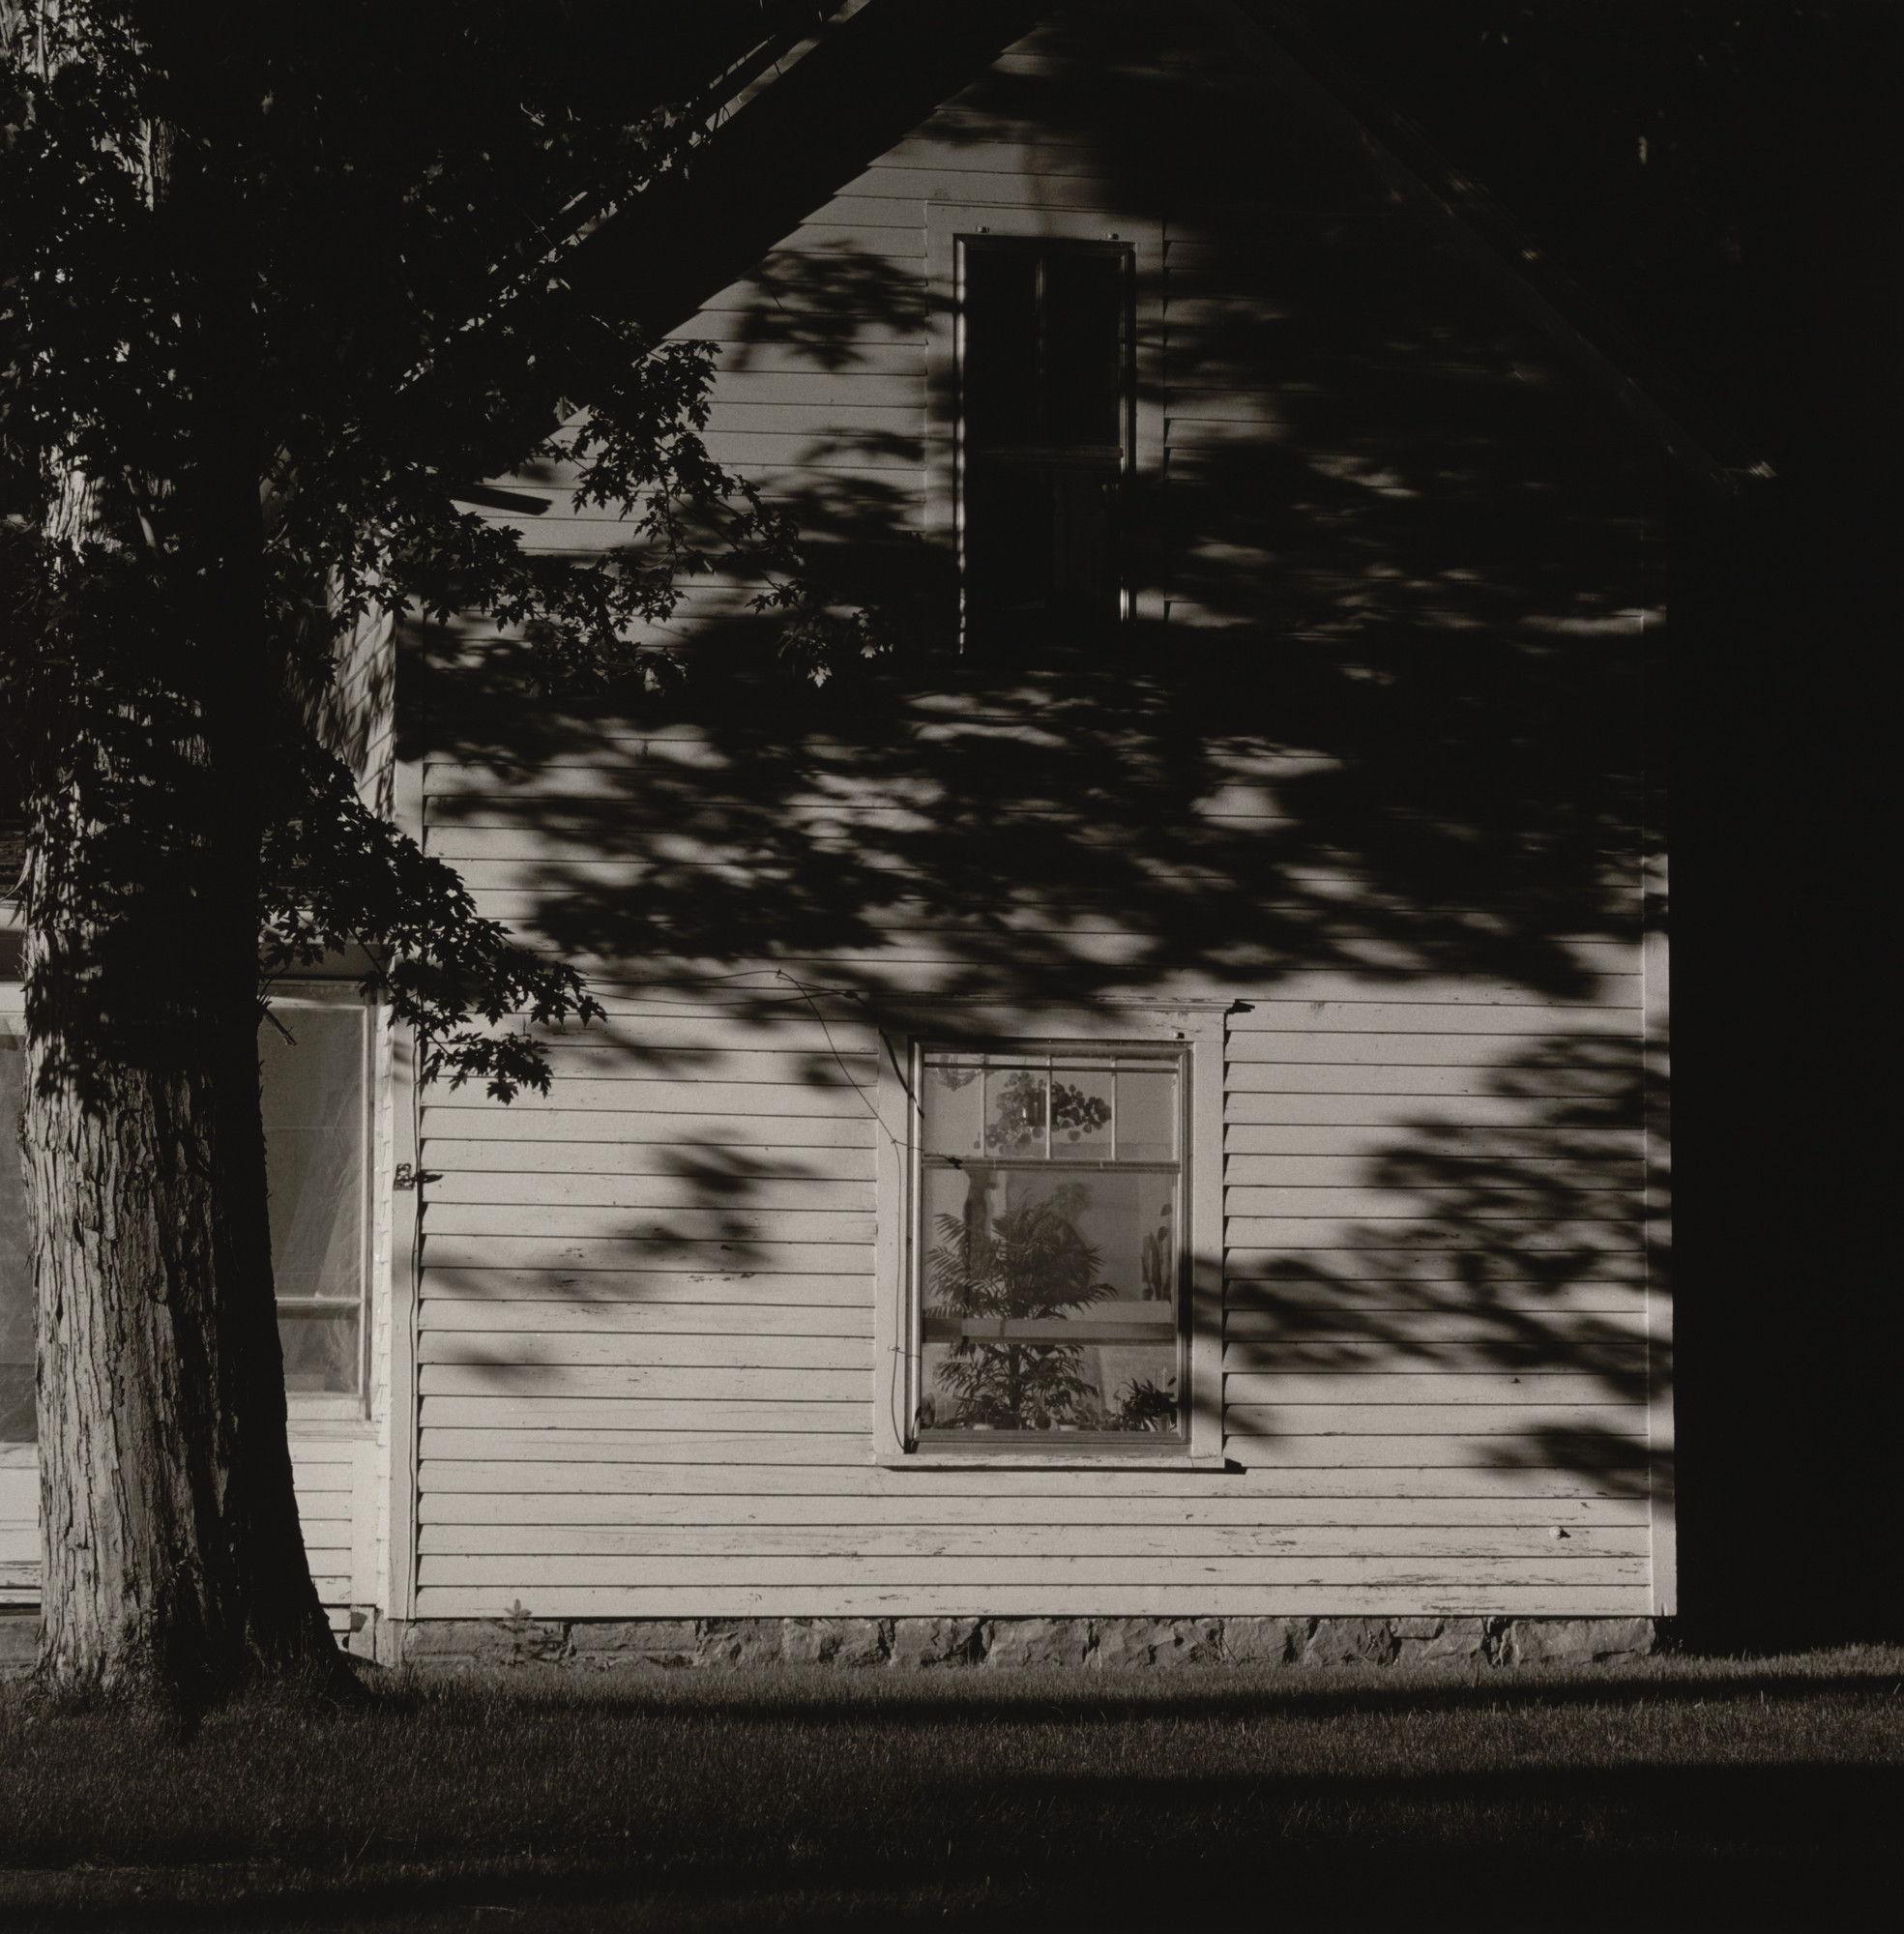 Robert Adams. Summer Nights No. 18. 1985